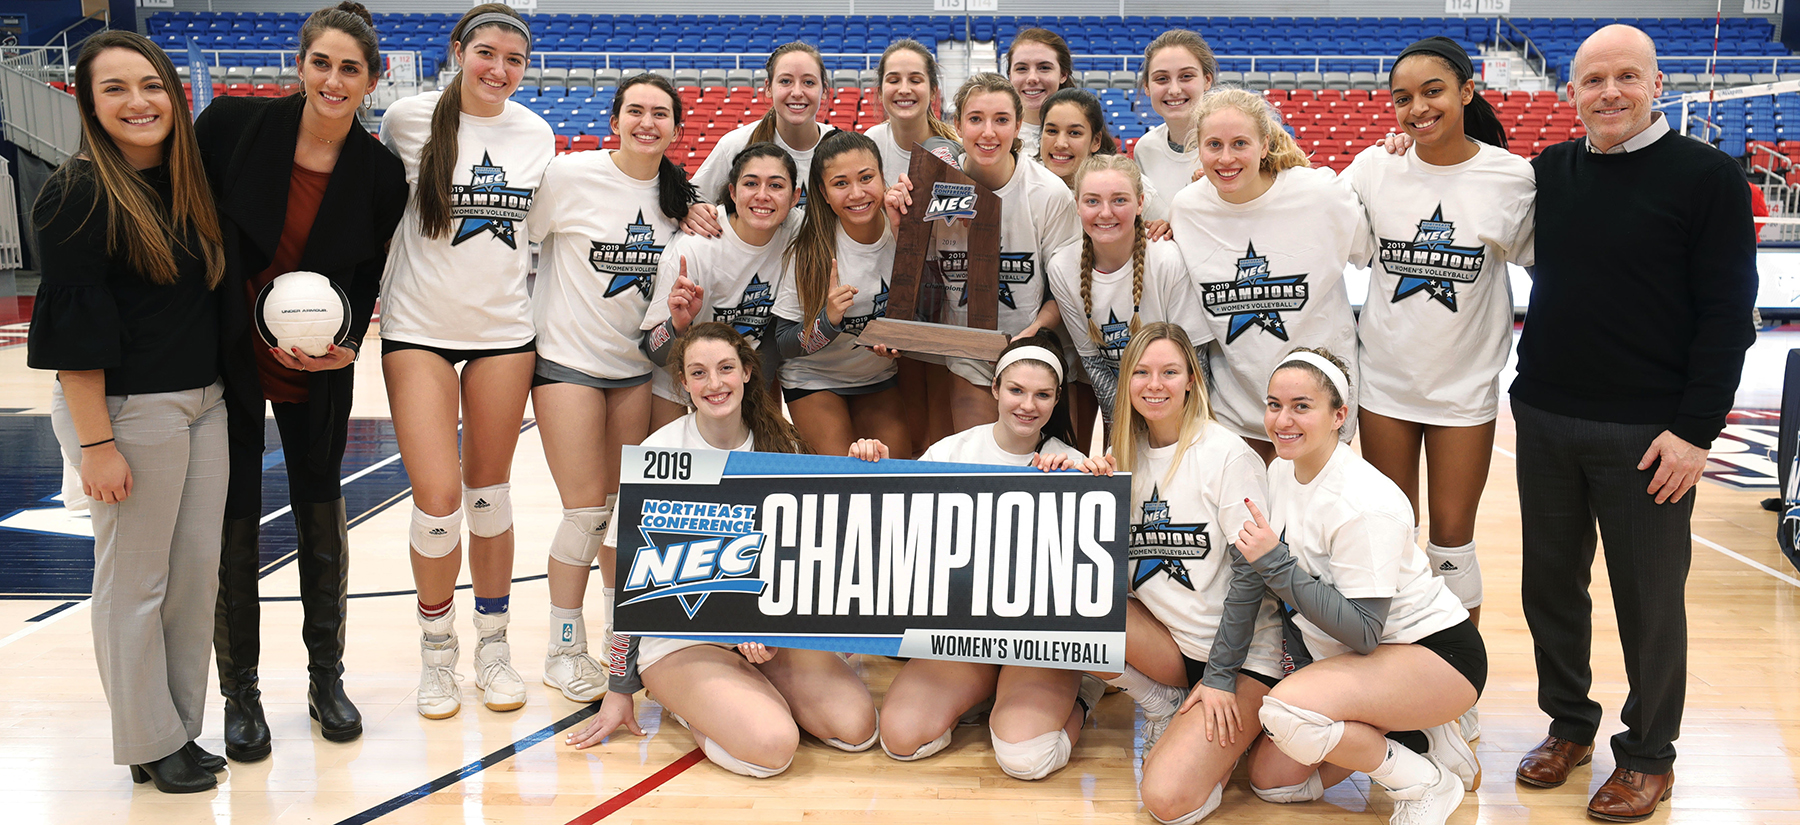 SHU Volleyball won the 2019 NEC Championship and advance to the NCAA Tournament! (Credit: Jason Cohn)